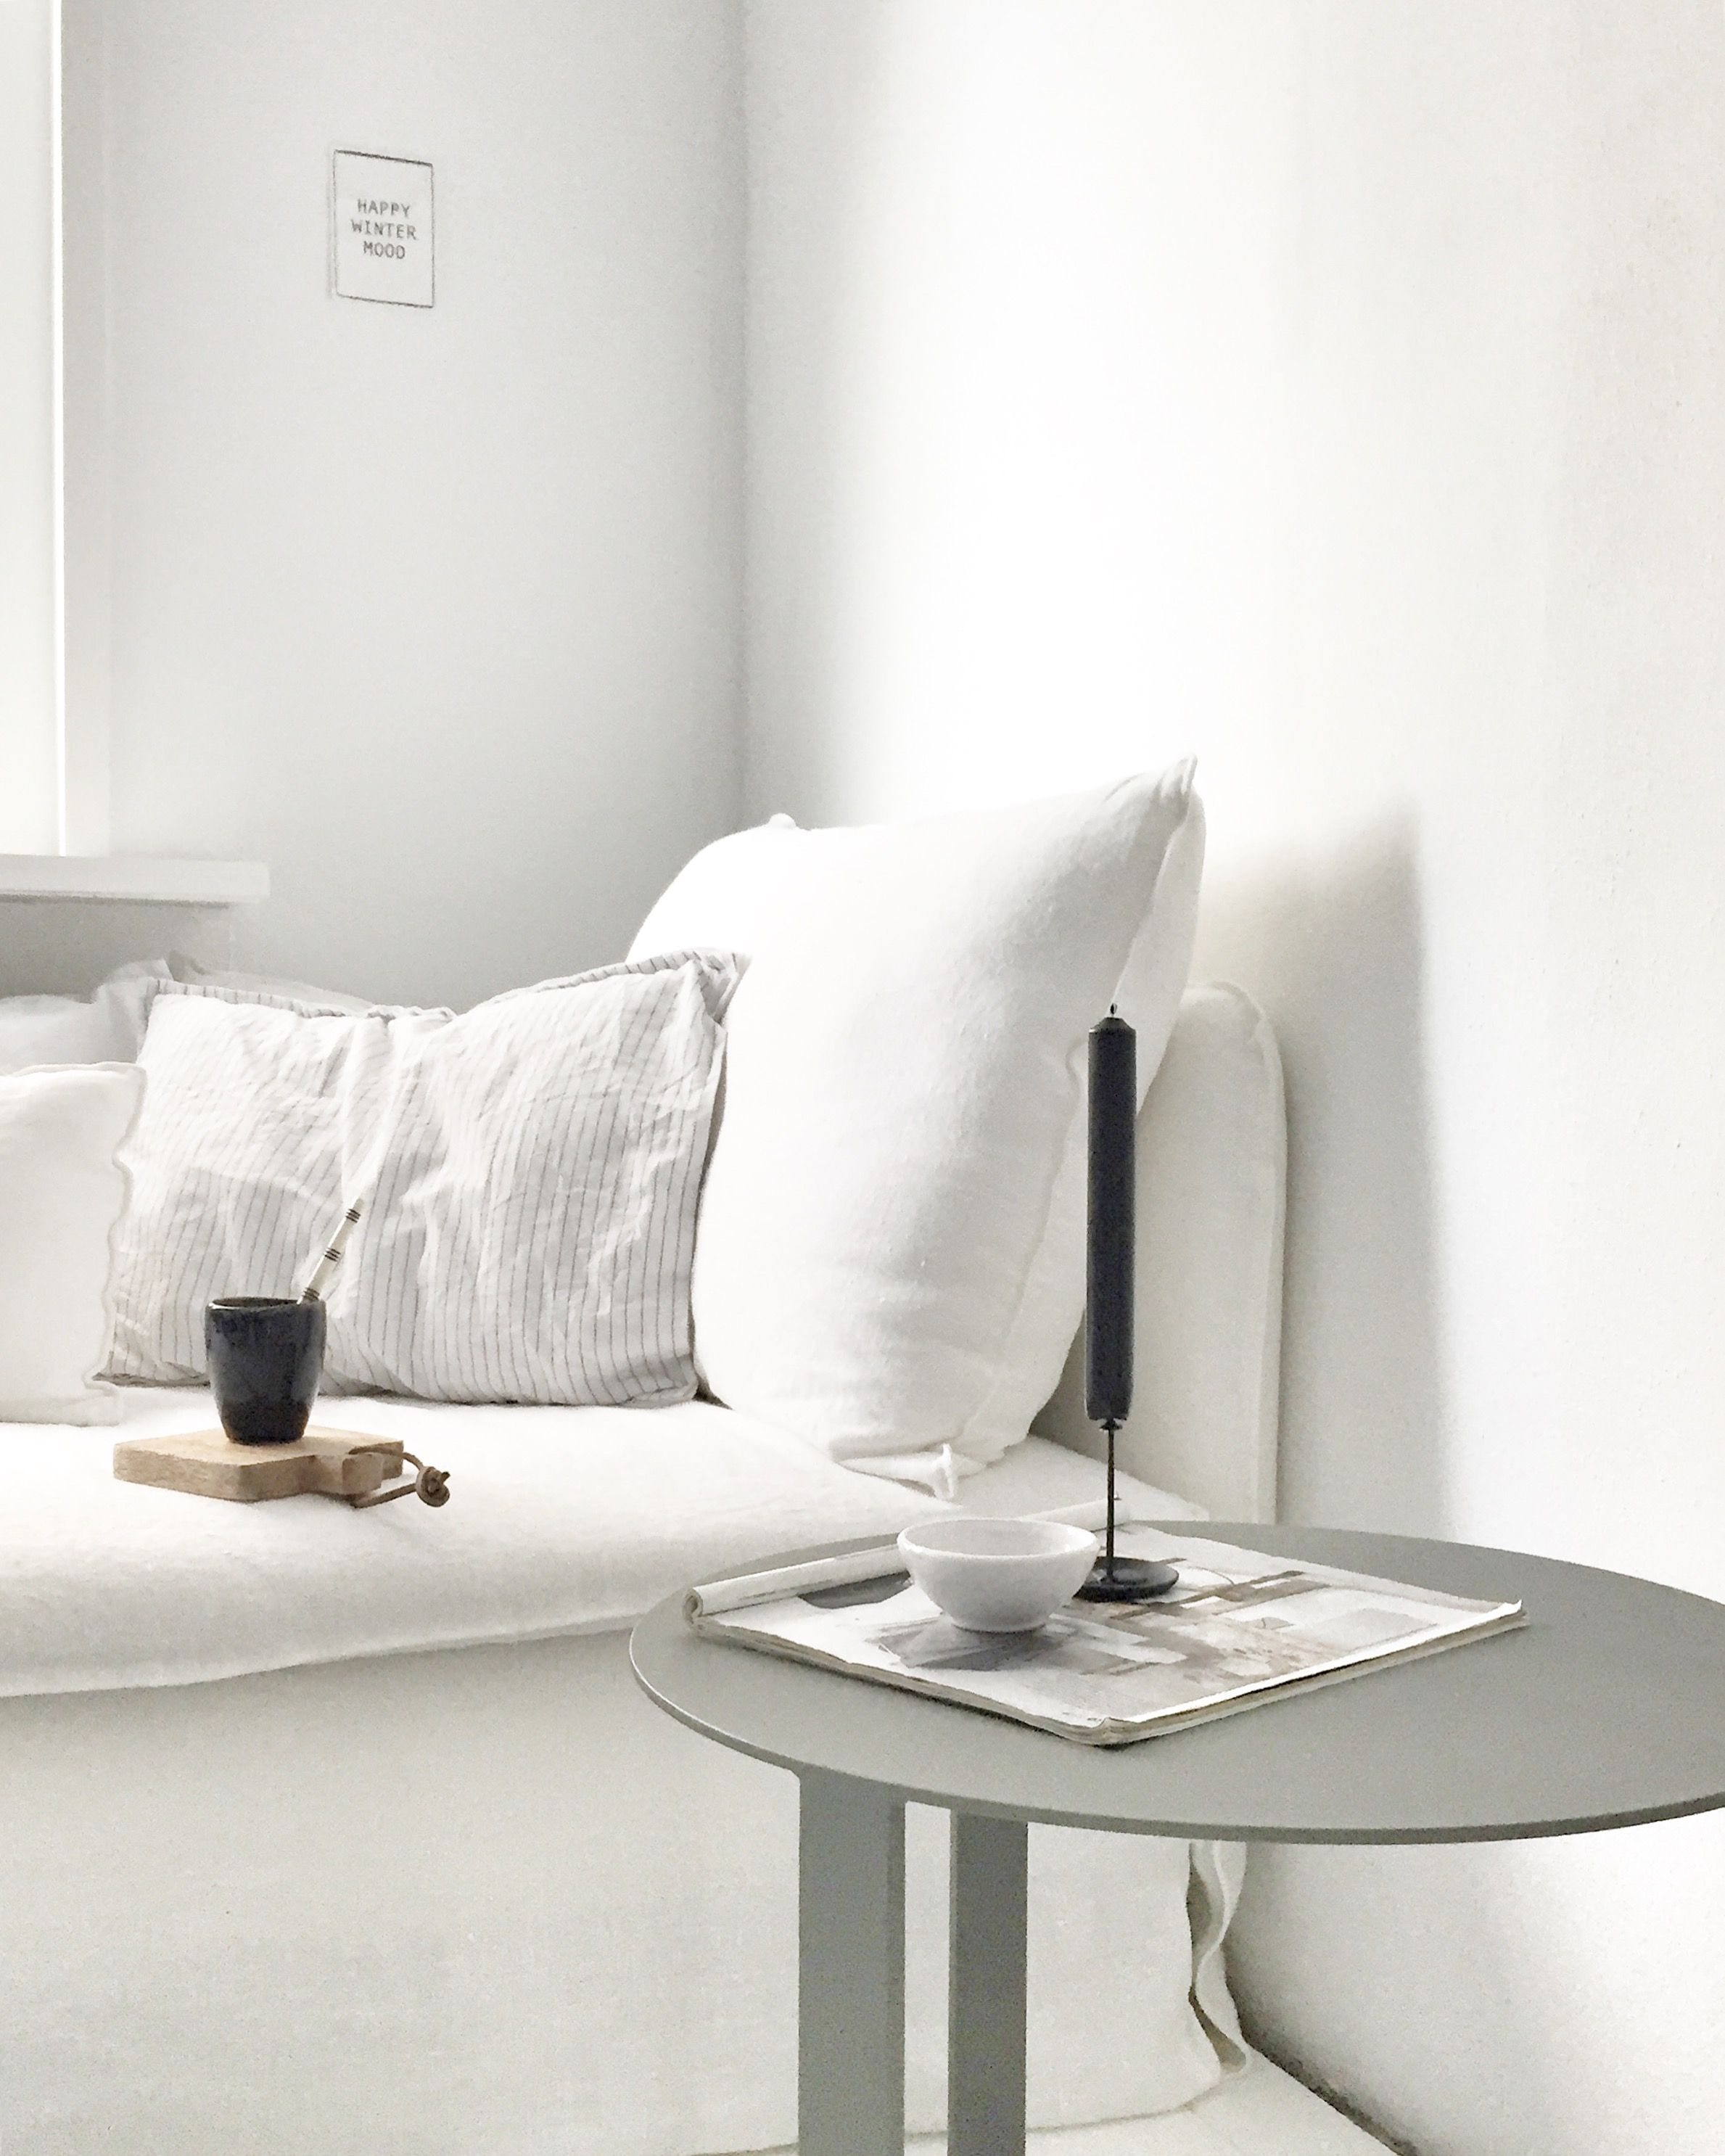 Simple Minimalist Interior White Linen Sofa Round Side Table With A Black Candle For Added Impact Ikea Sod White Linen Sofa Round Sofa Living Dining Room